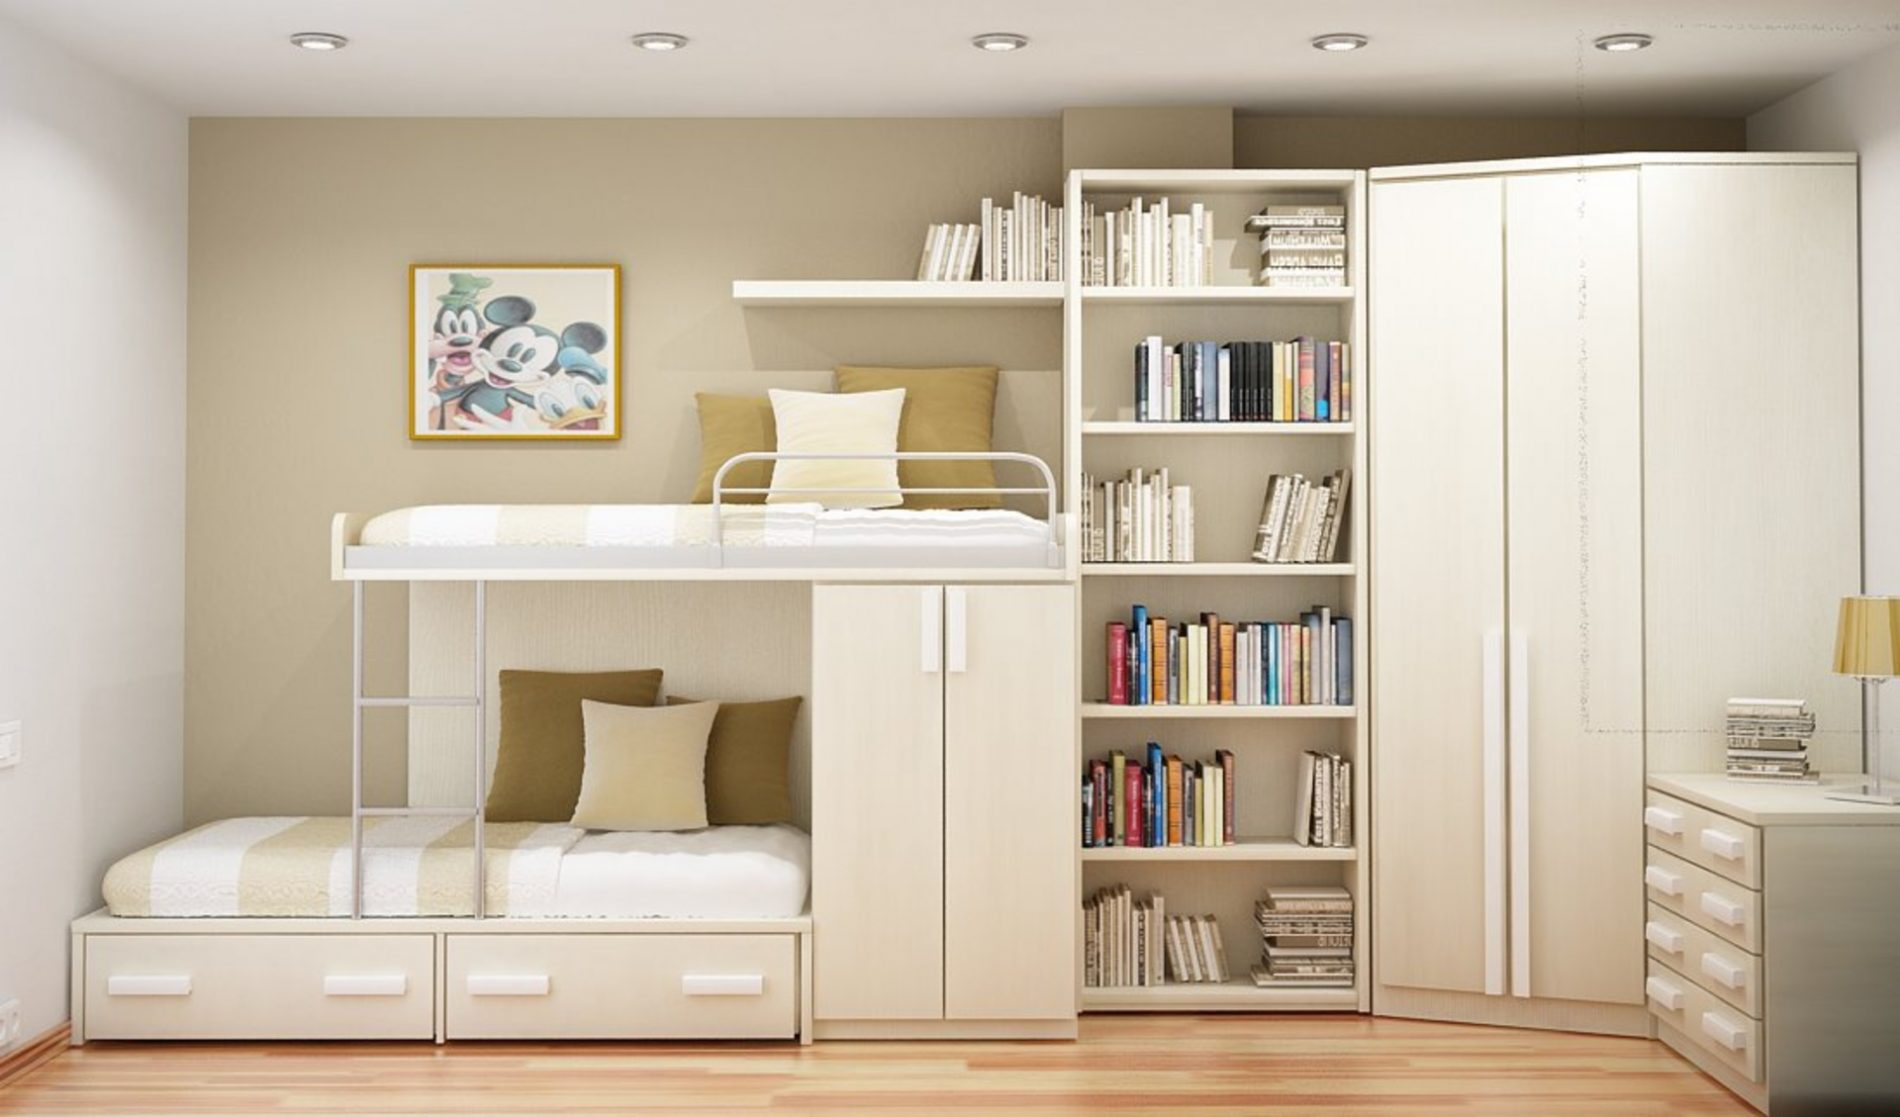 Choosing Beds With Storage To Maximize Space